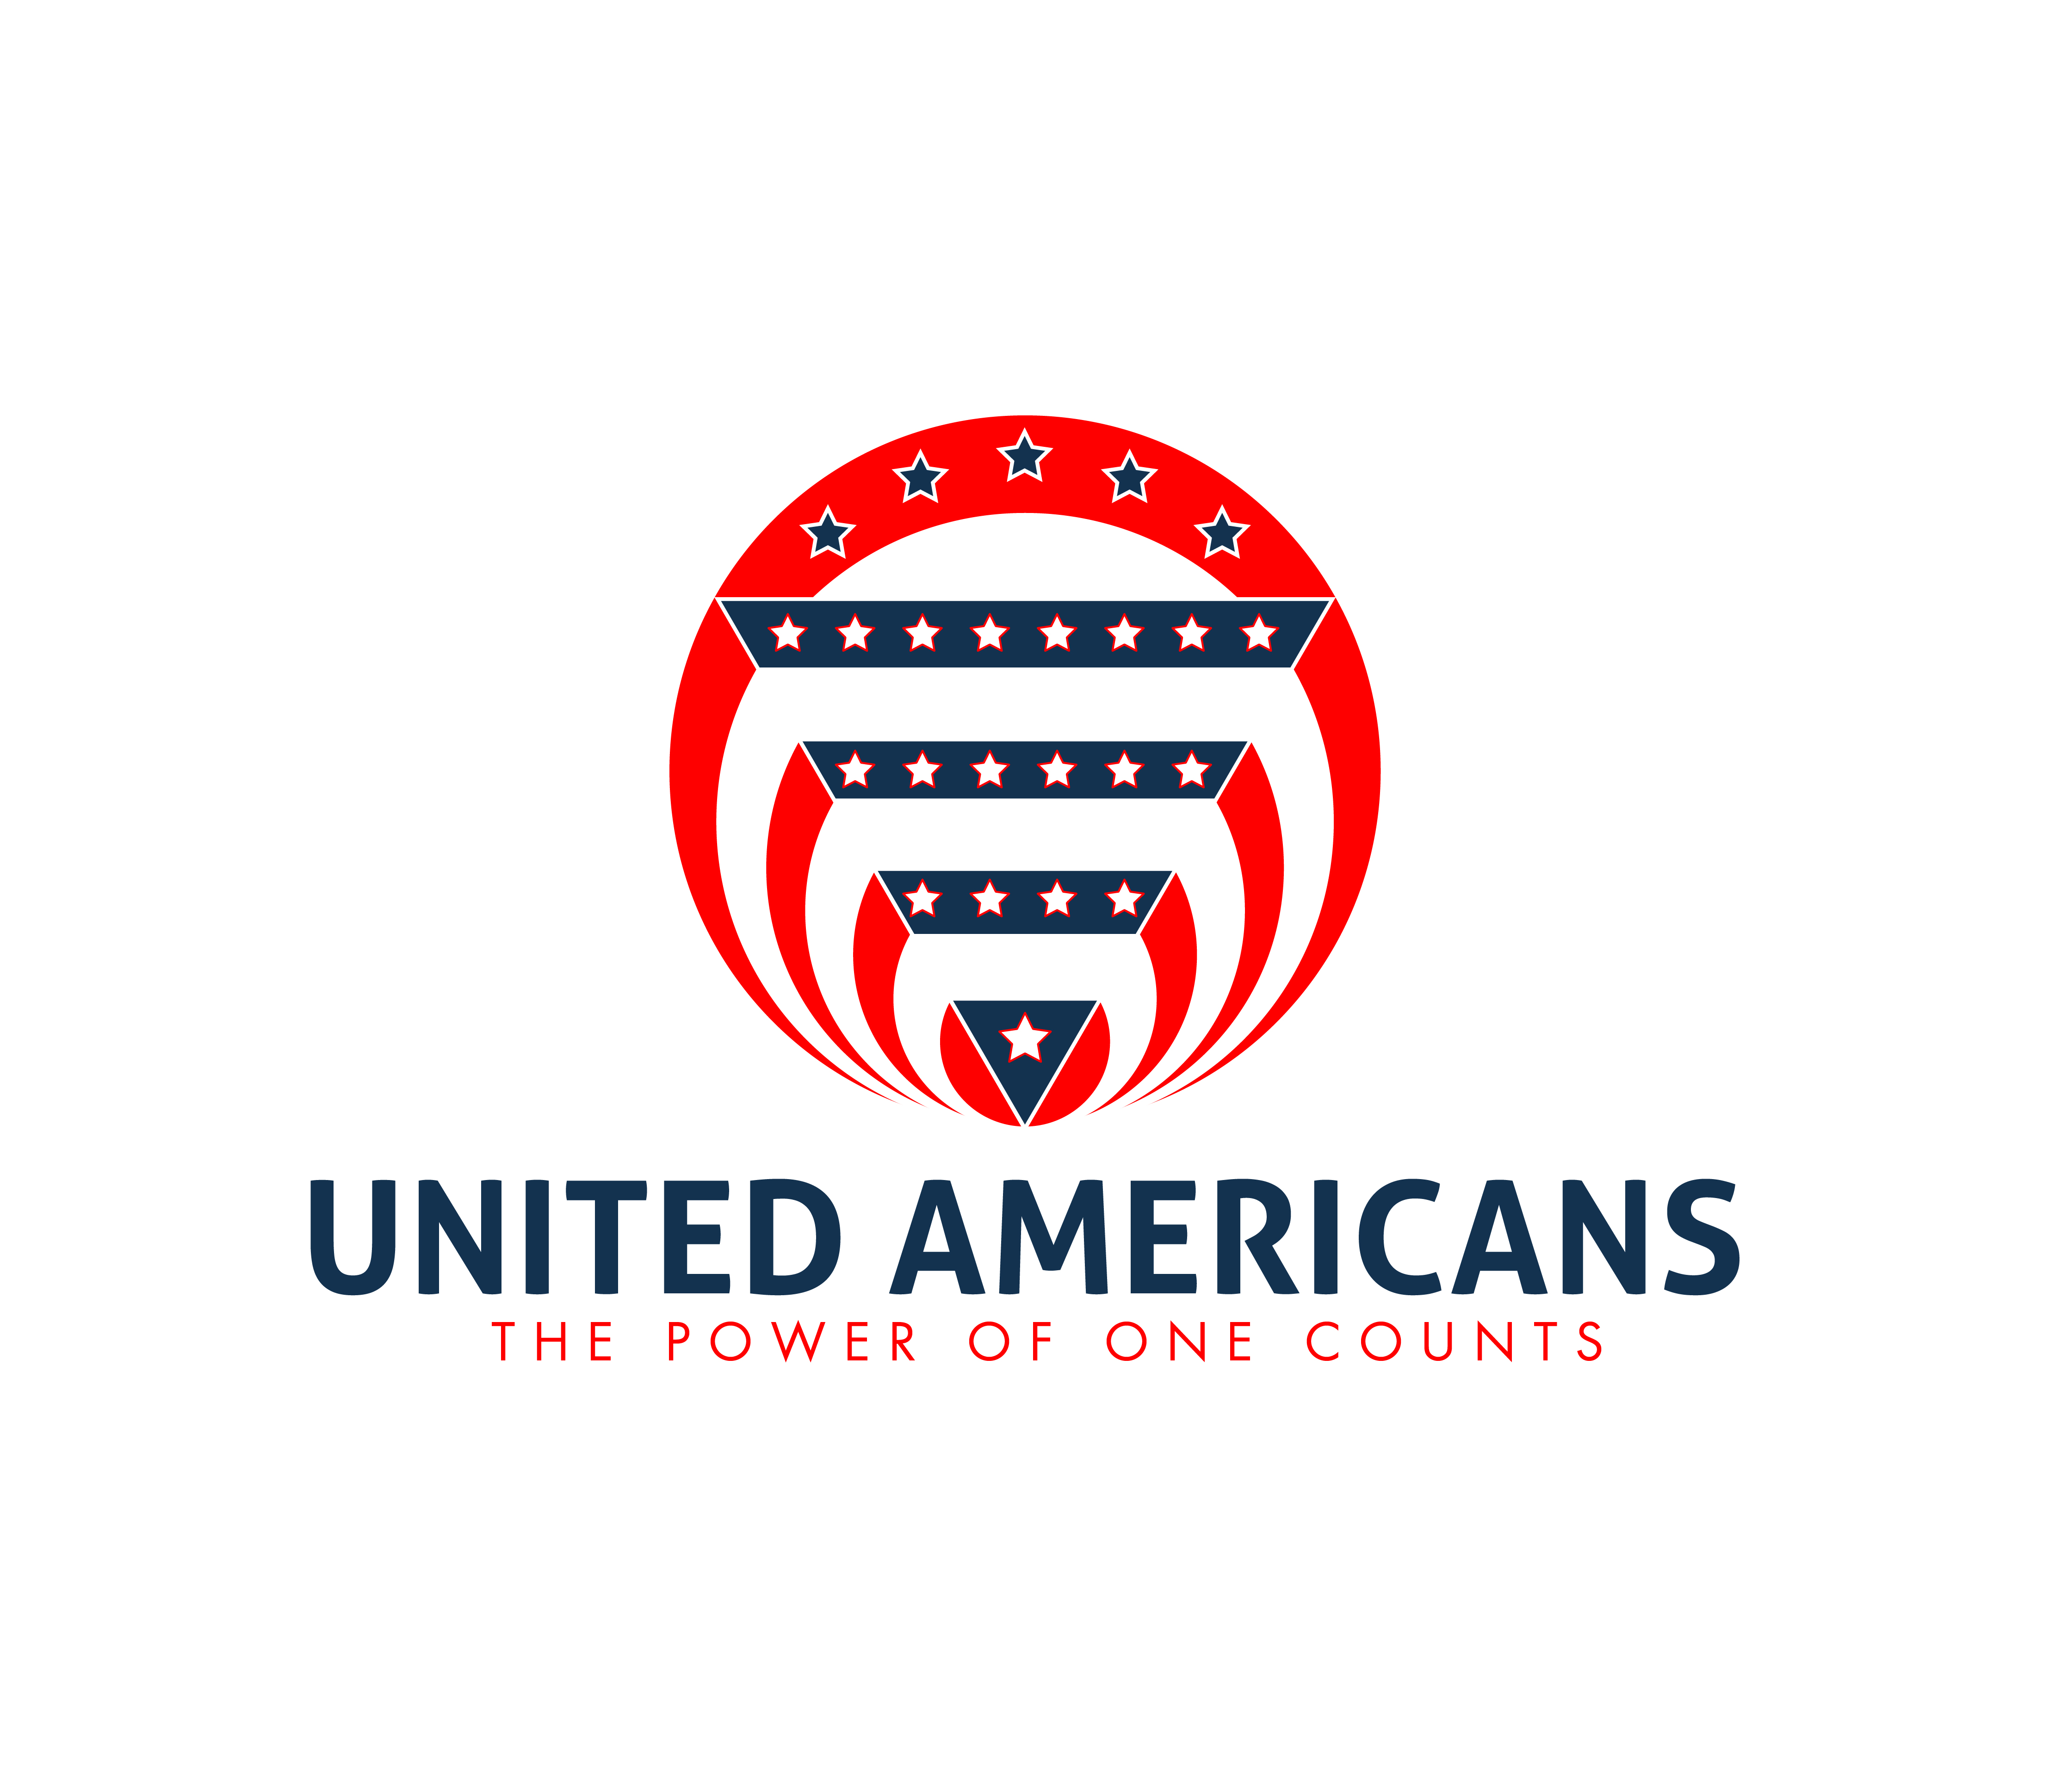 Logo Design by 3draw - Entry No. 148 in the Logo Design Contest Creative Logo Design for United Americans.